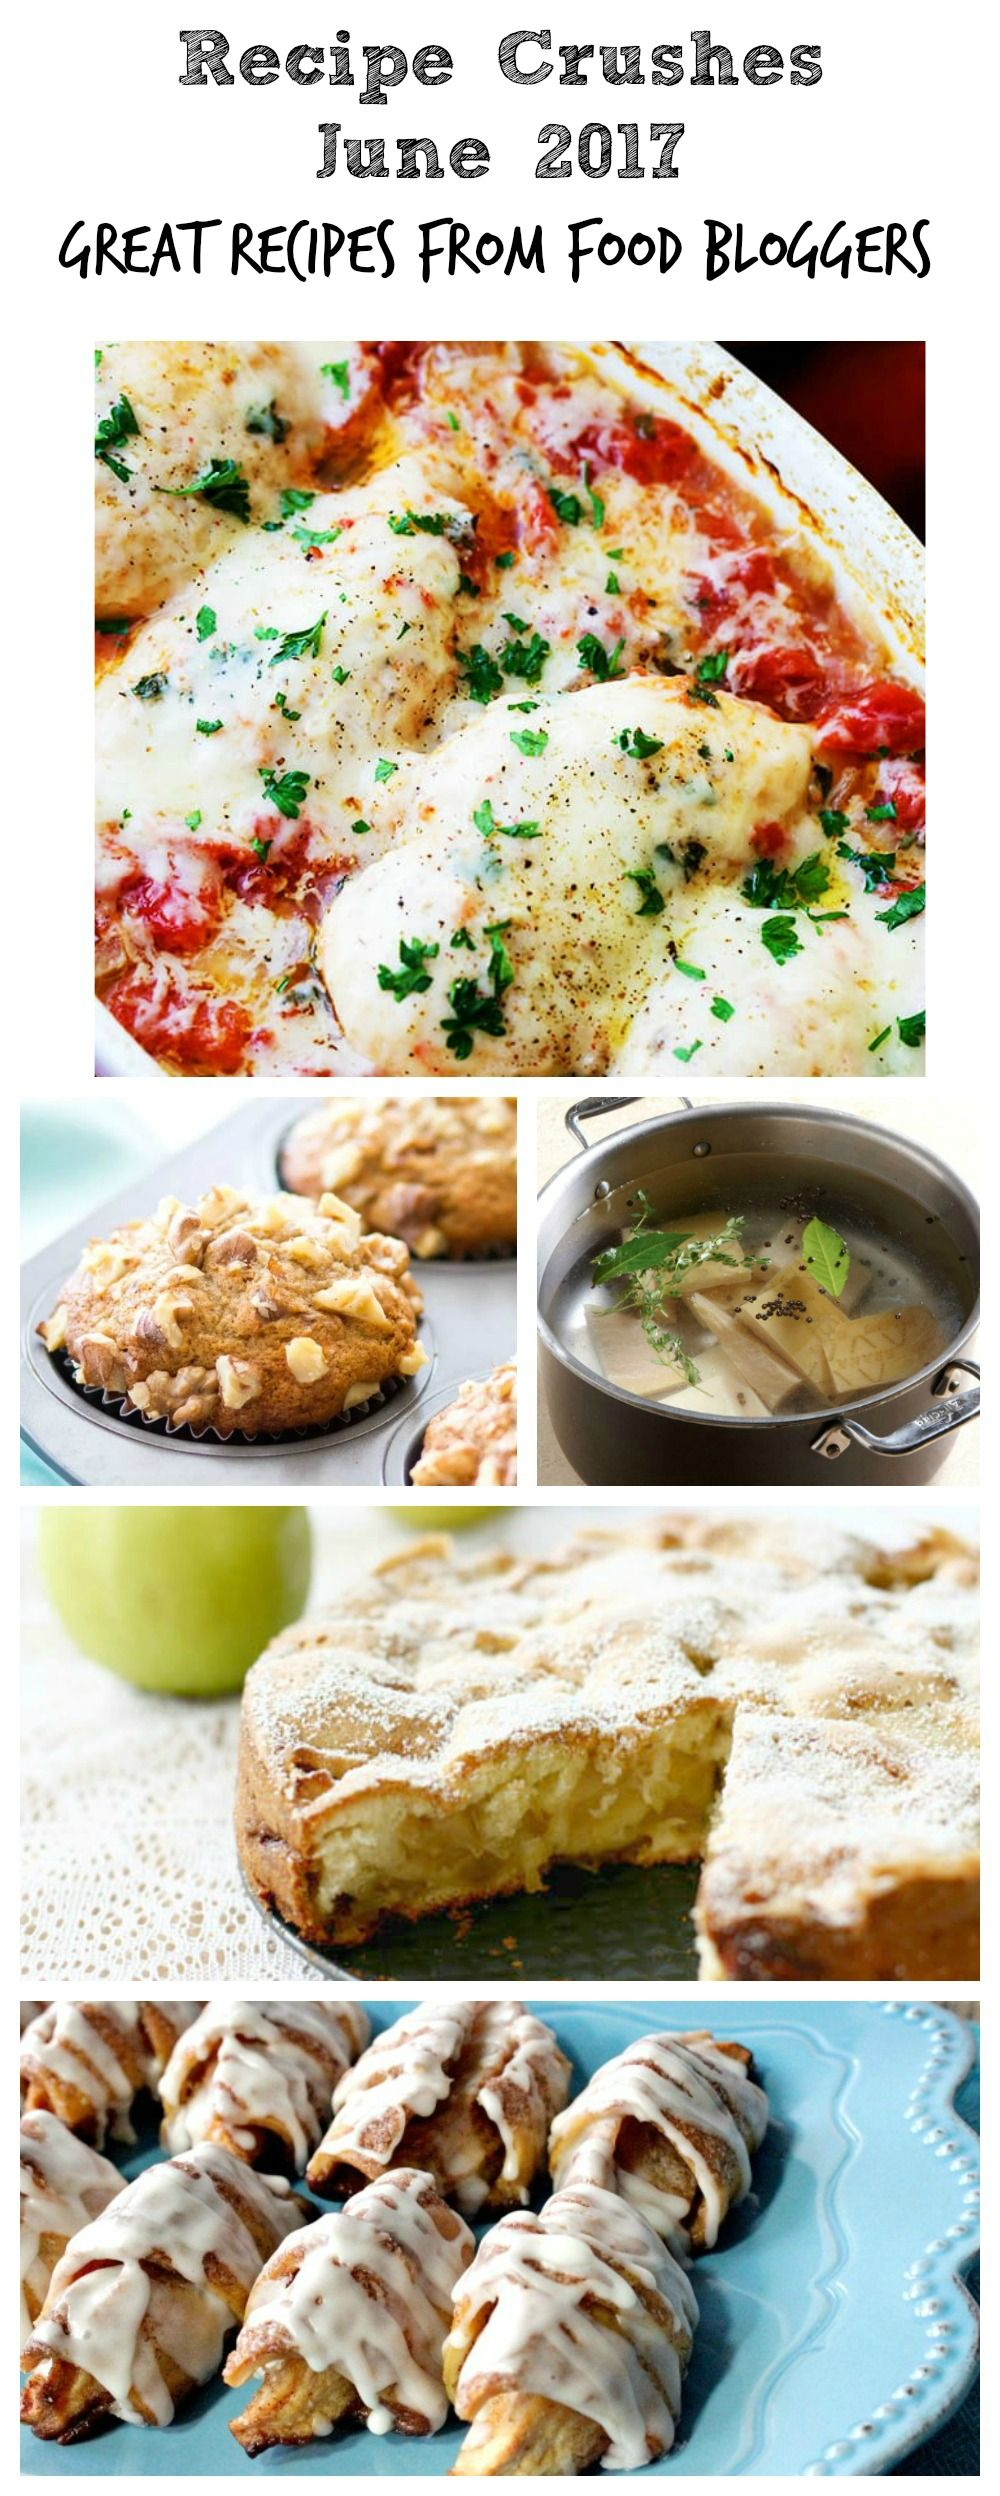 Recipe crushes great recipes from food bloggers around the web recipe crushes great recipes from food bloggers around the web for june 2017 forumfinder Images